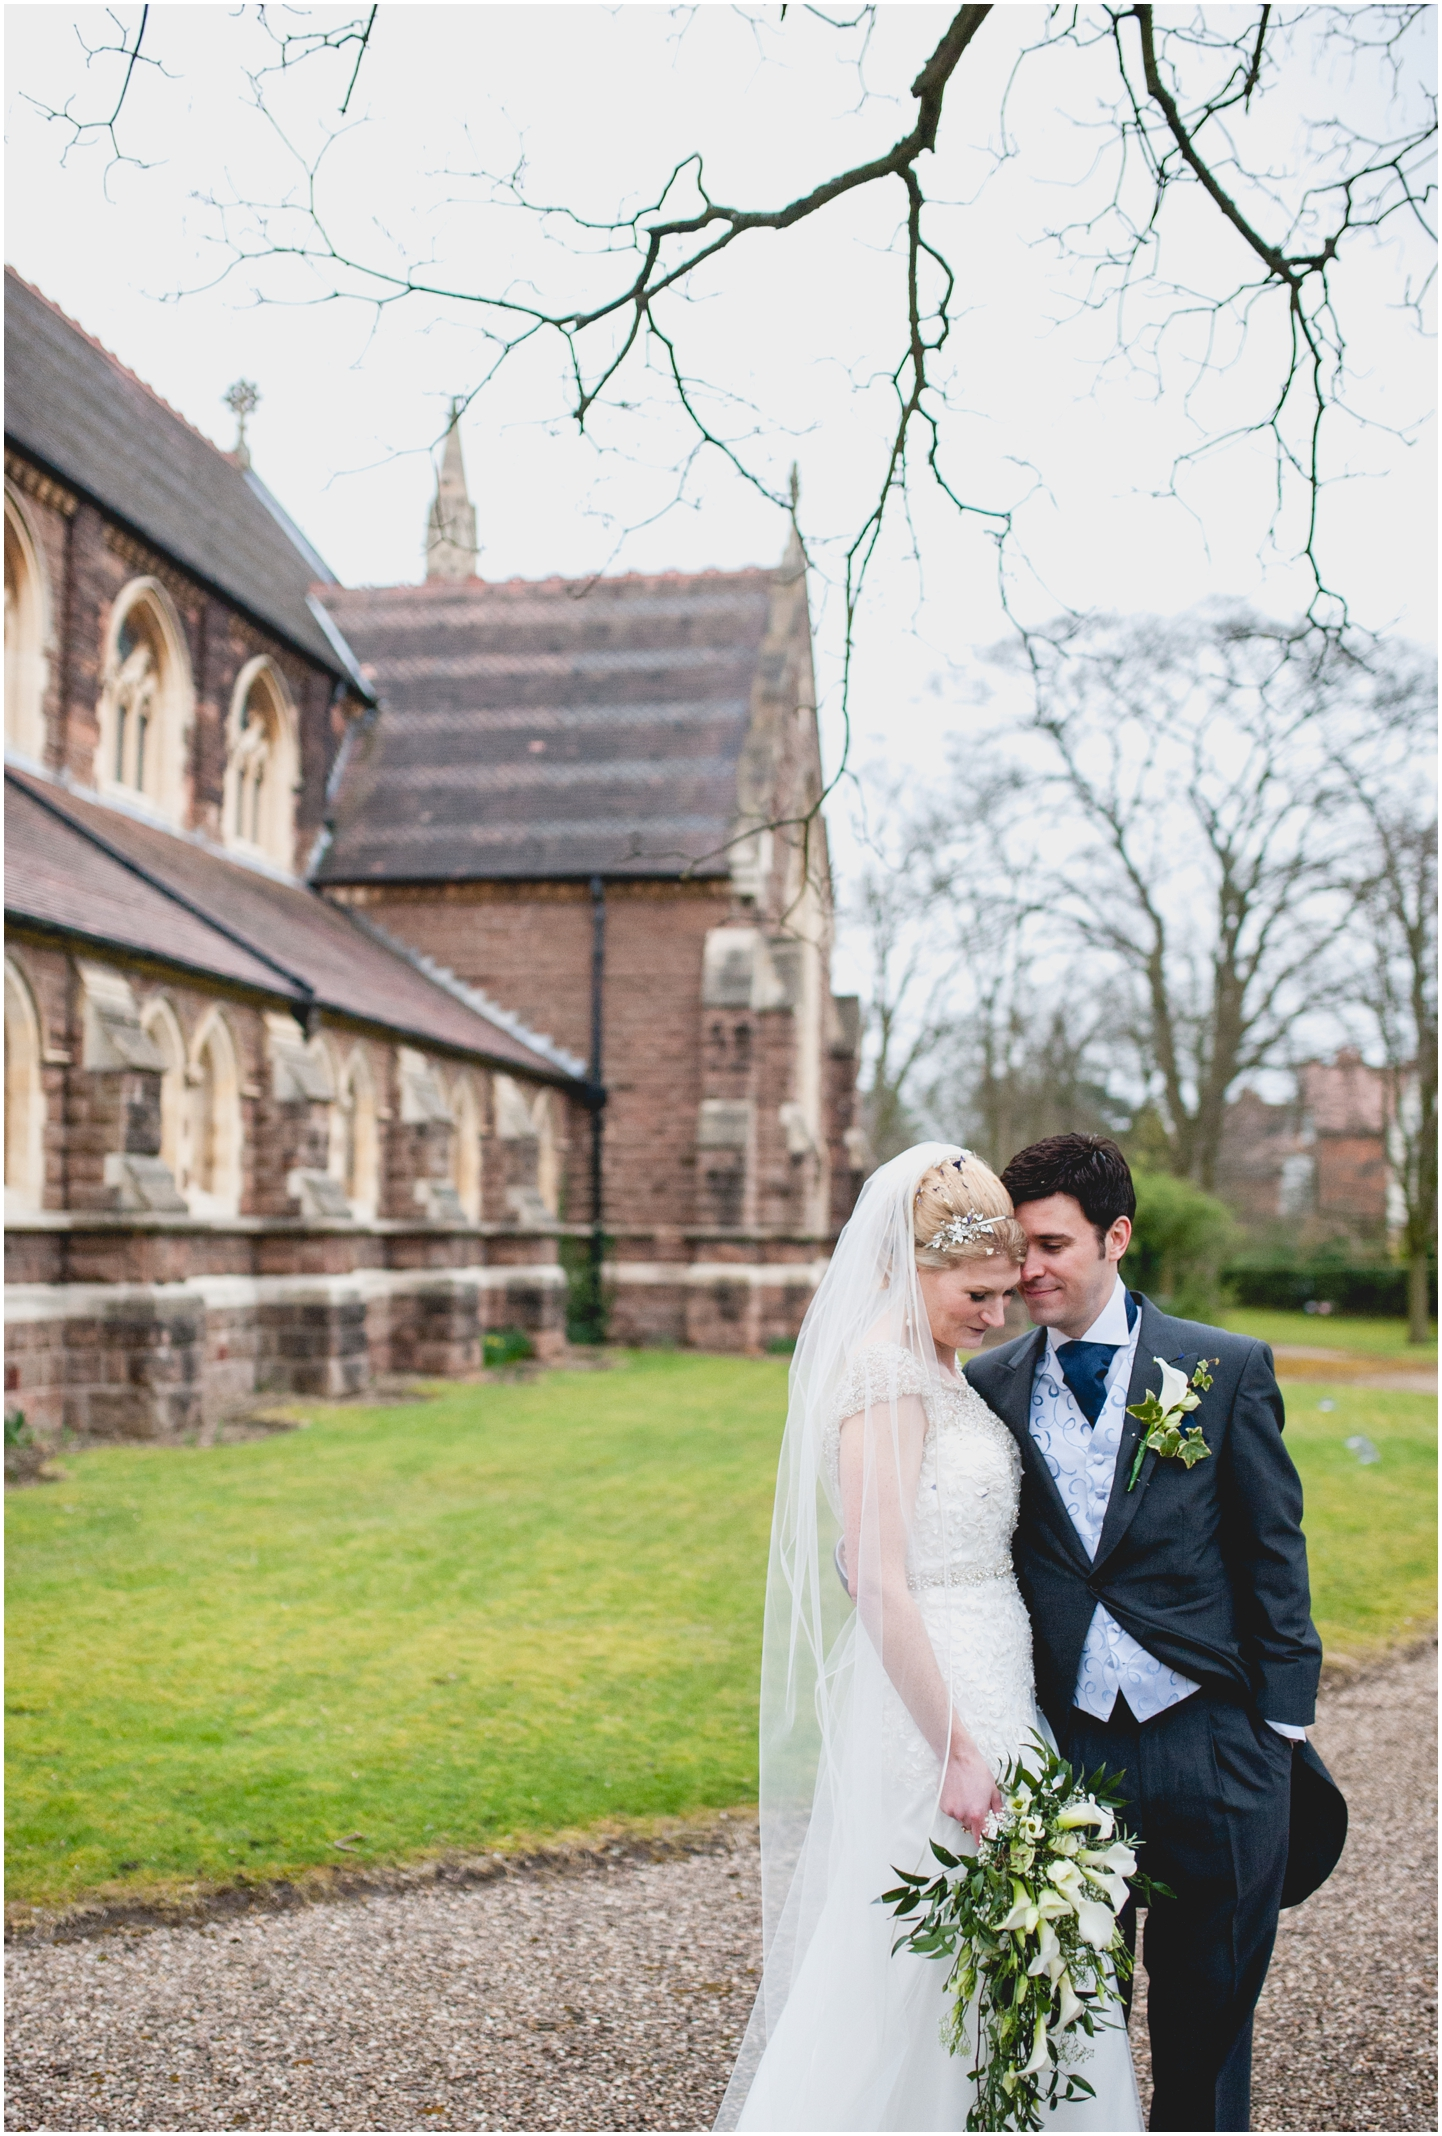 Pendrell Hall Wedding Photography by Lisa Carpenter Photography, West Midlands photographer, St Agnes Church in Moseley